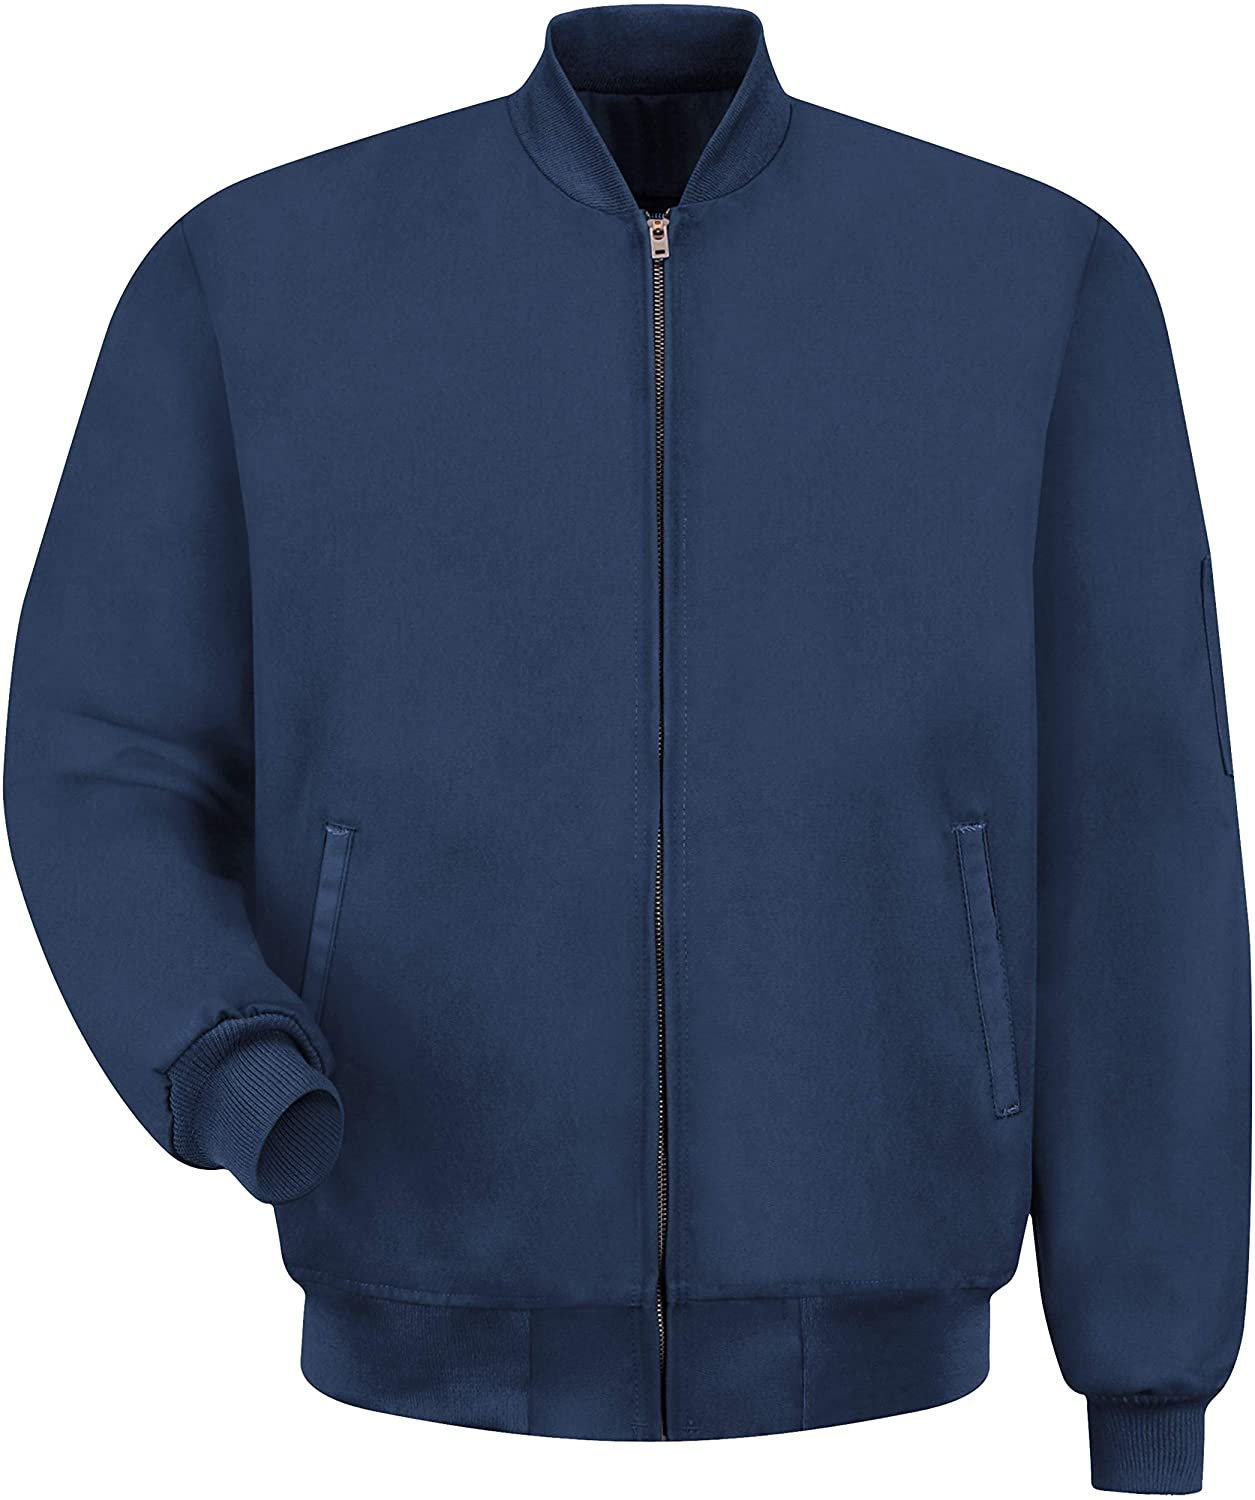 Red Kap Men's Navy Solid Team Jacket